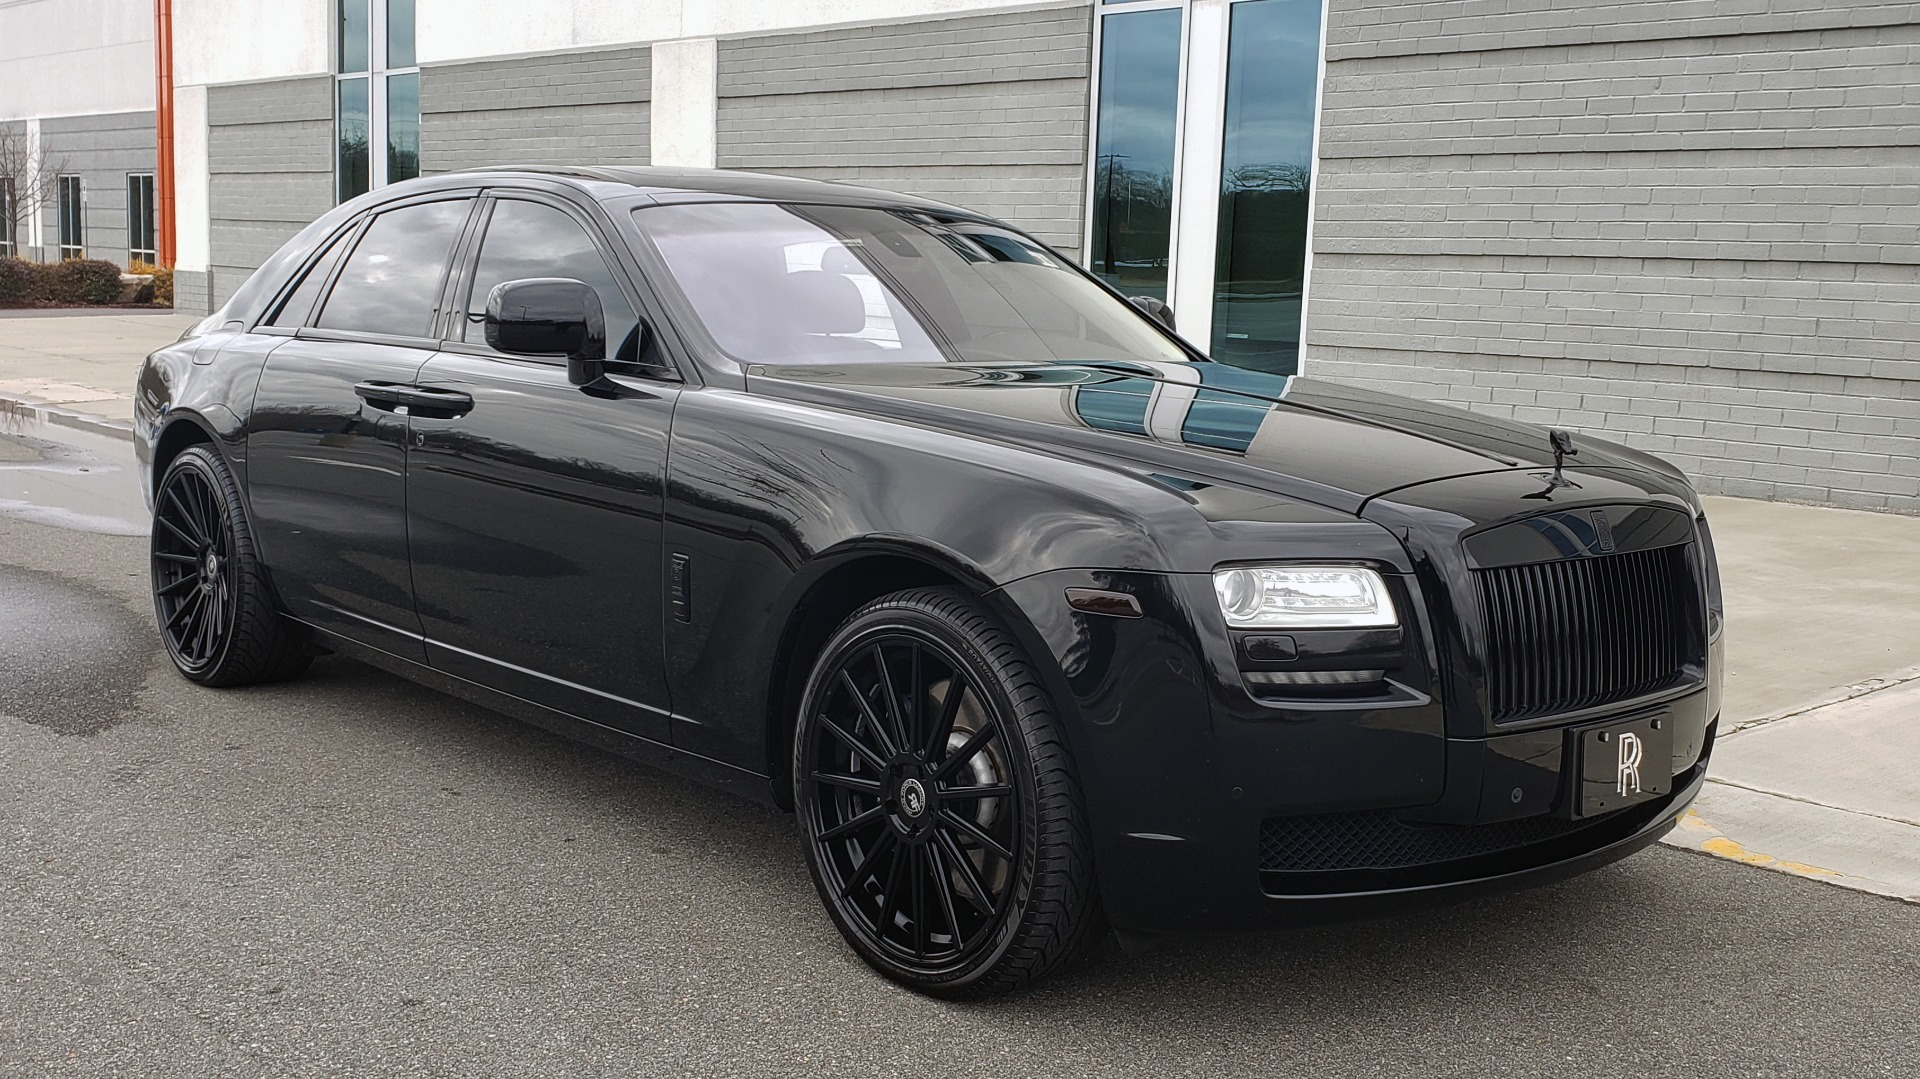 Used 2010 Rolls-Royce GHOST 6.6L TURBO V12 (563HP) / NAV / SUNROOF / SUICIDE DOORS for sale $89,000 at Formula Imports in Charlotte NC 28227 9